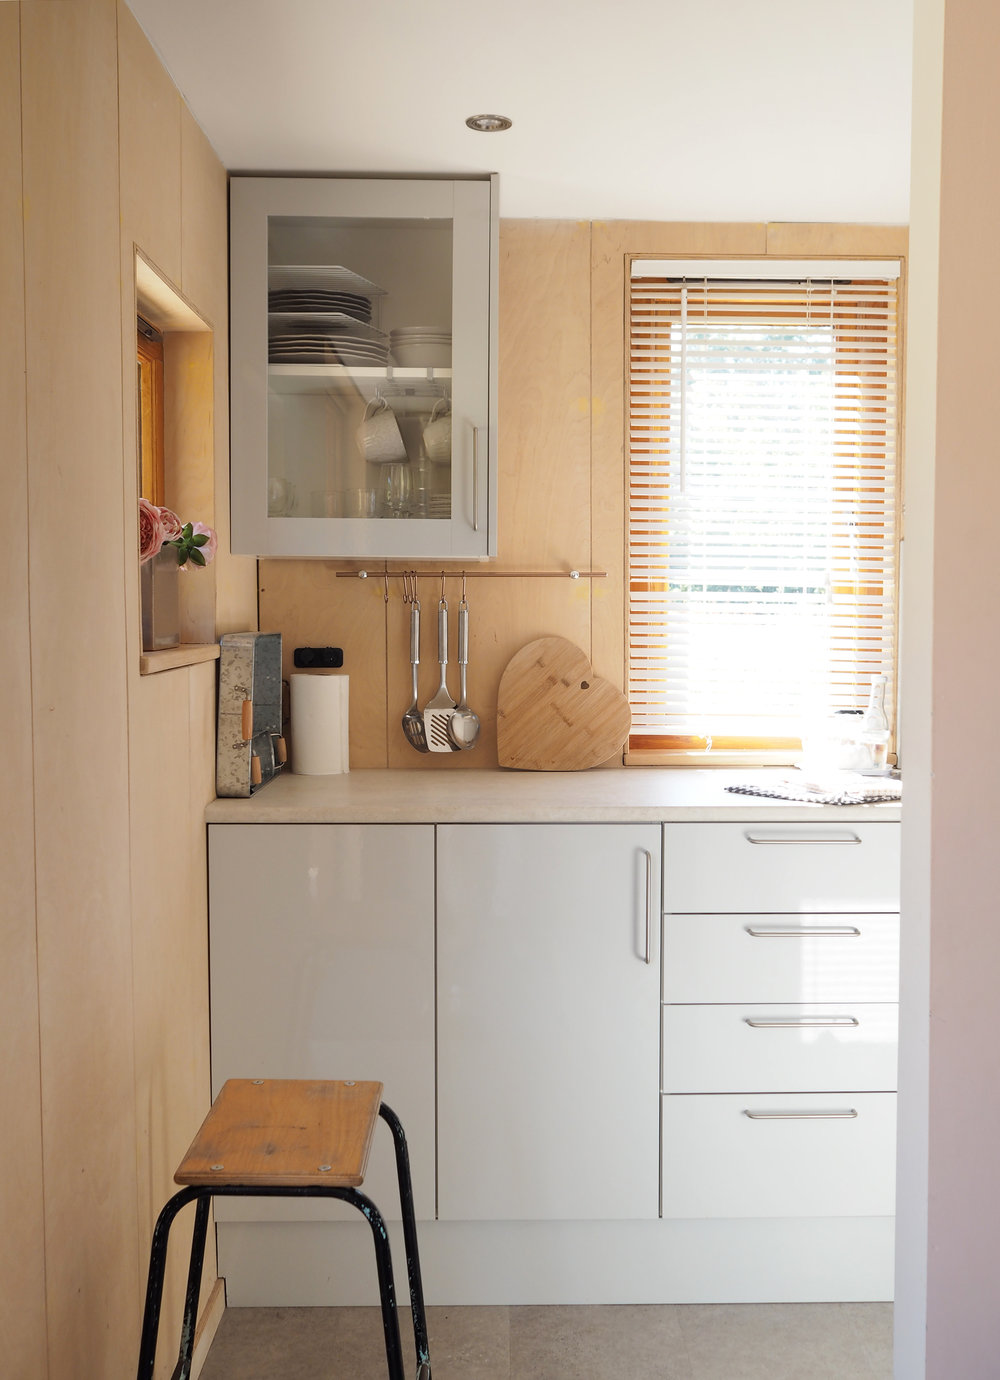 Tiny Homes Holidays - Isle of Wight